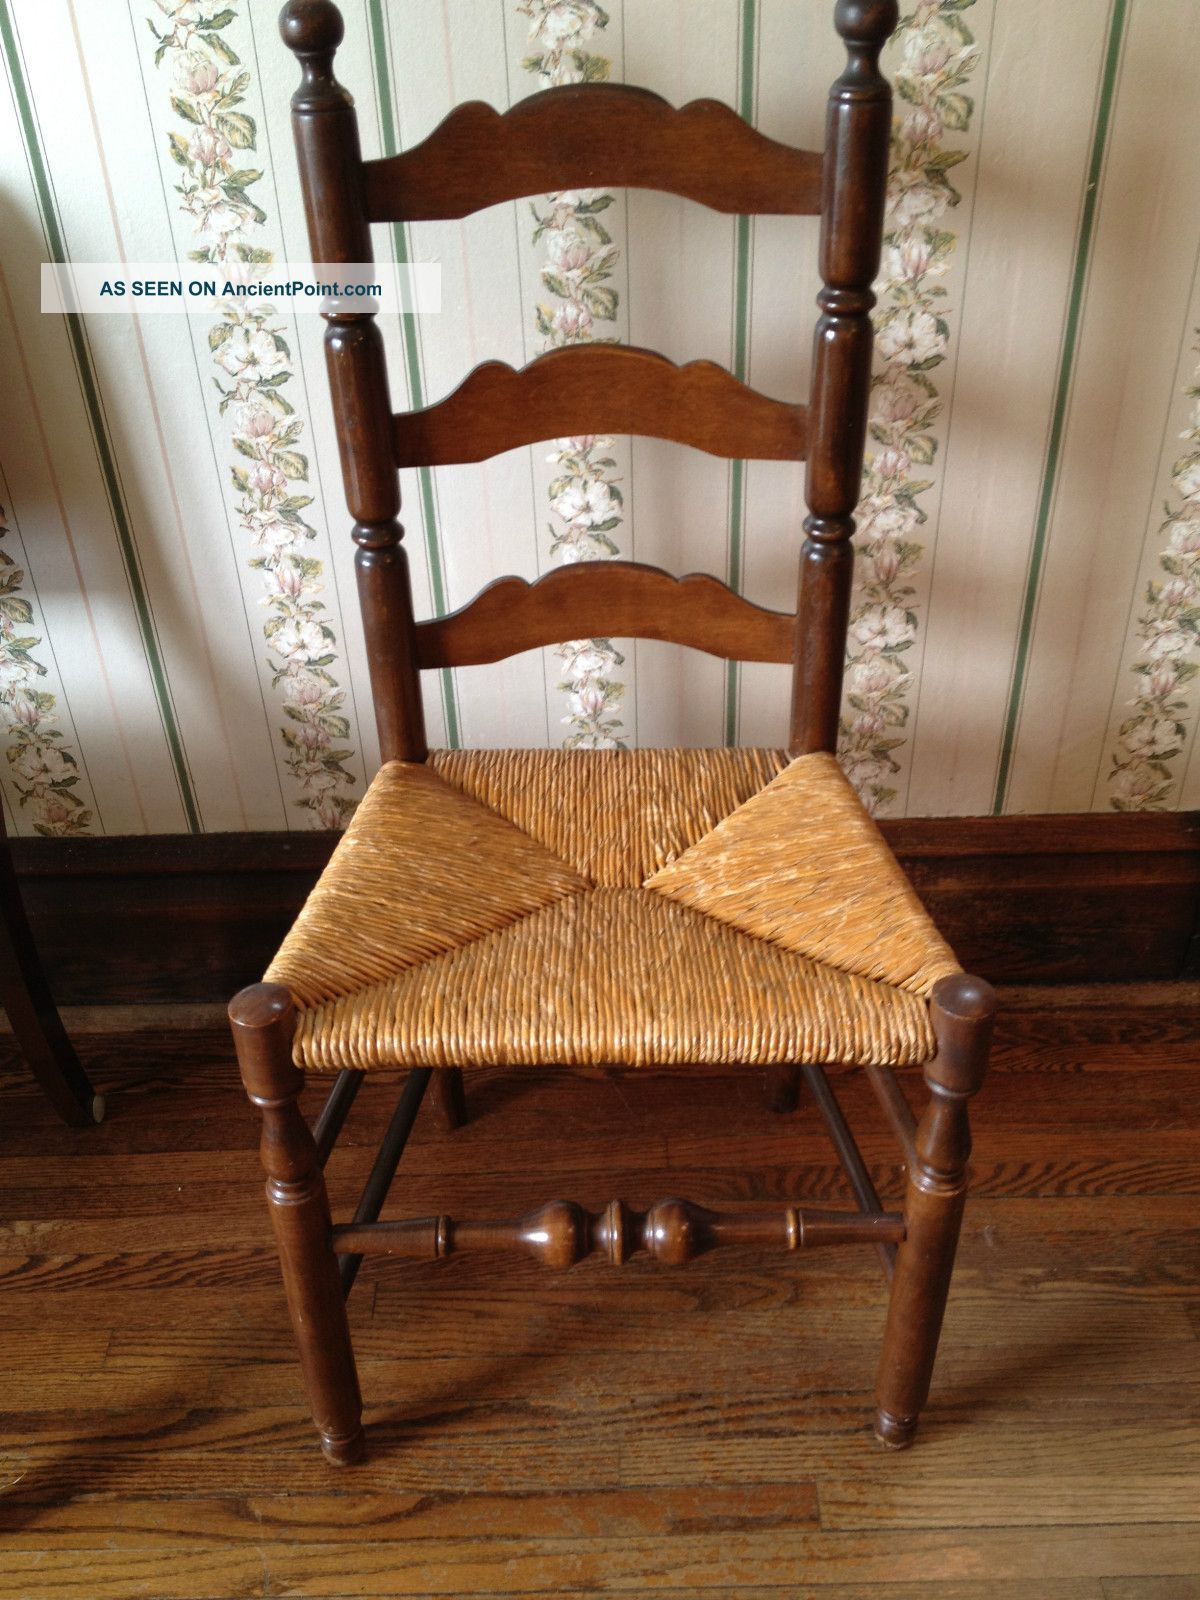 Antique Wood Chair With Cane Seat 1900-1950 photo $30 - Antique Wood Chair With Cane Seat 1900-1950 Photo $30 Old Chairs